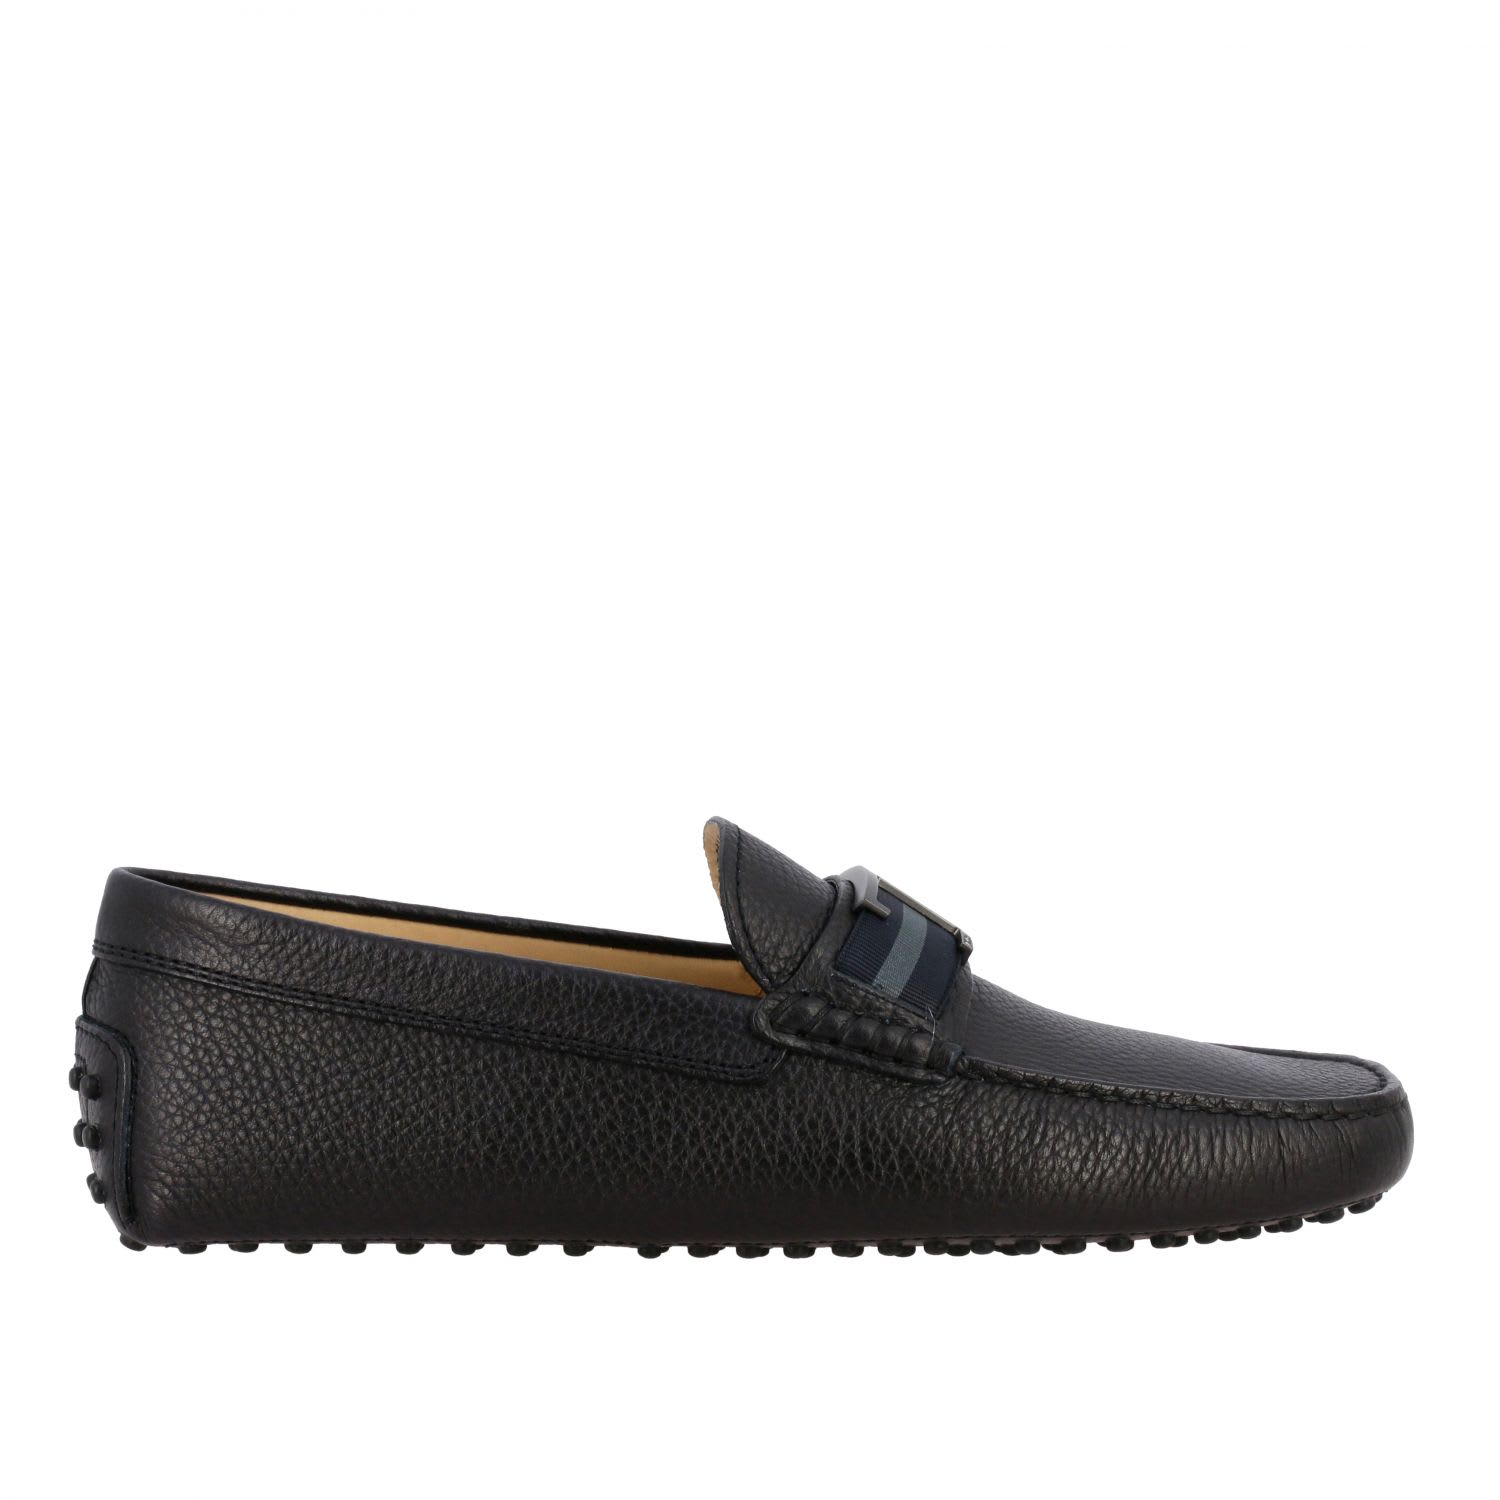 Tods Loafers Tods Gommini Moccasin In Leather With Double T